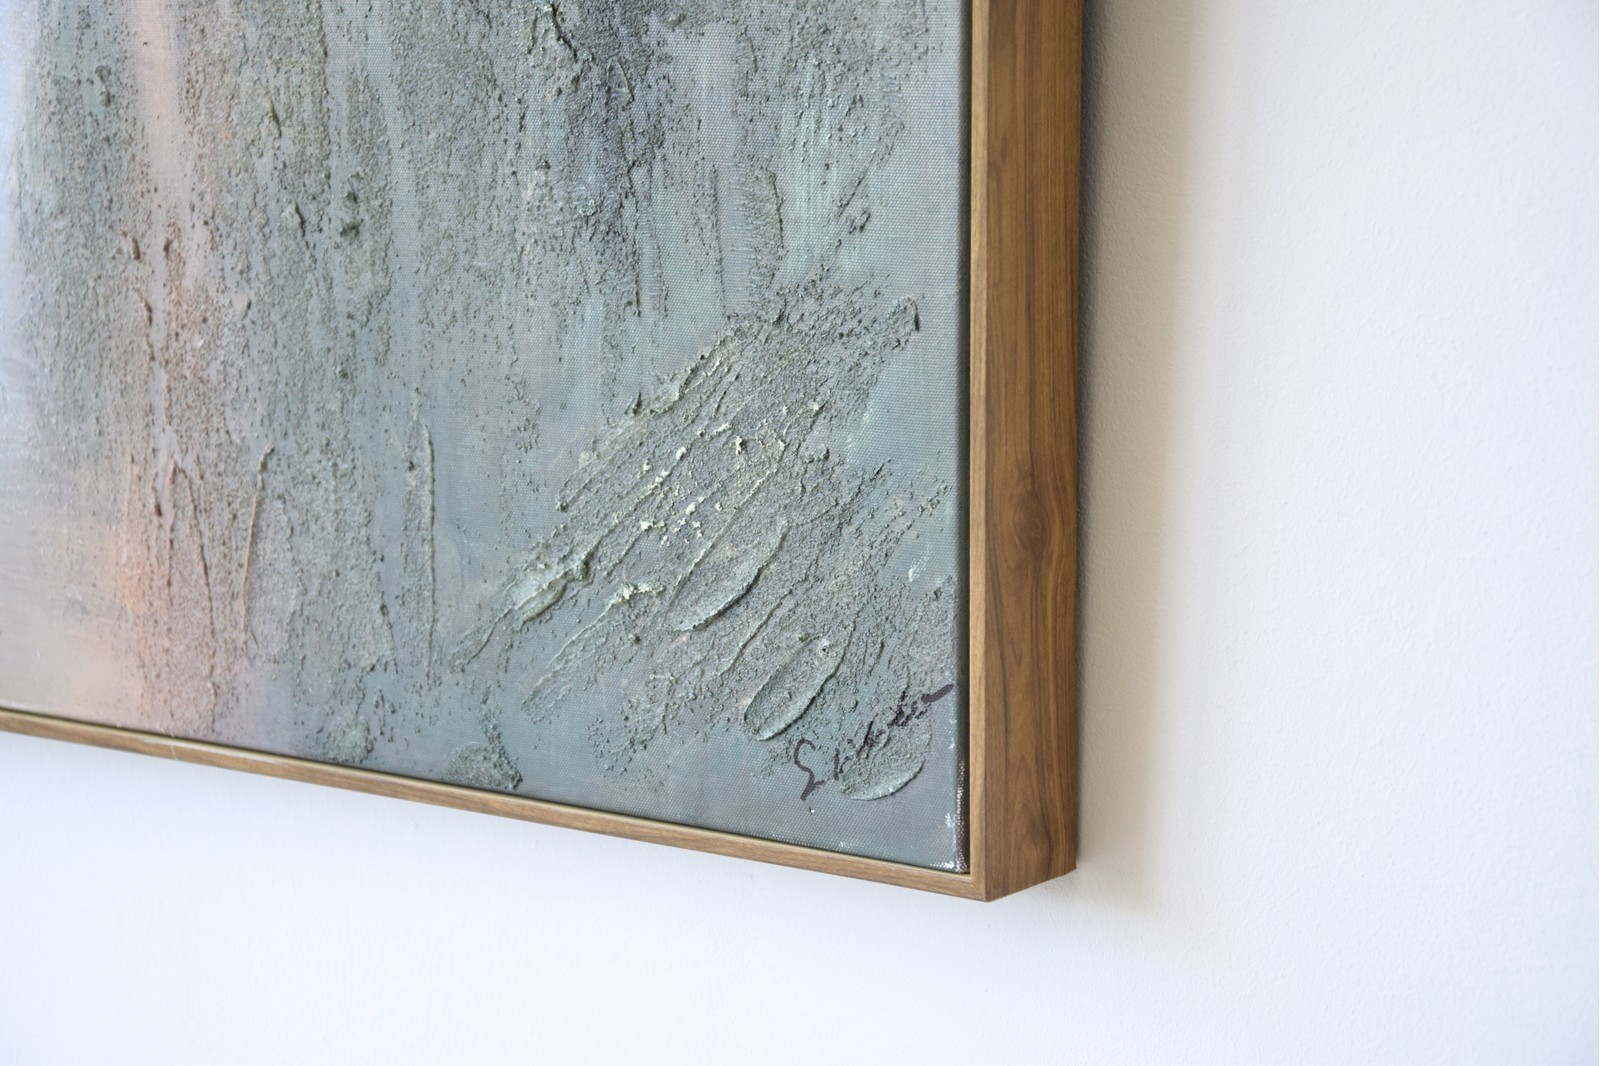 ABSTRACT PAINTING EARTH WITH FRAME